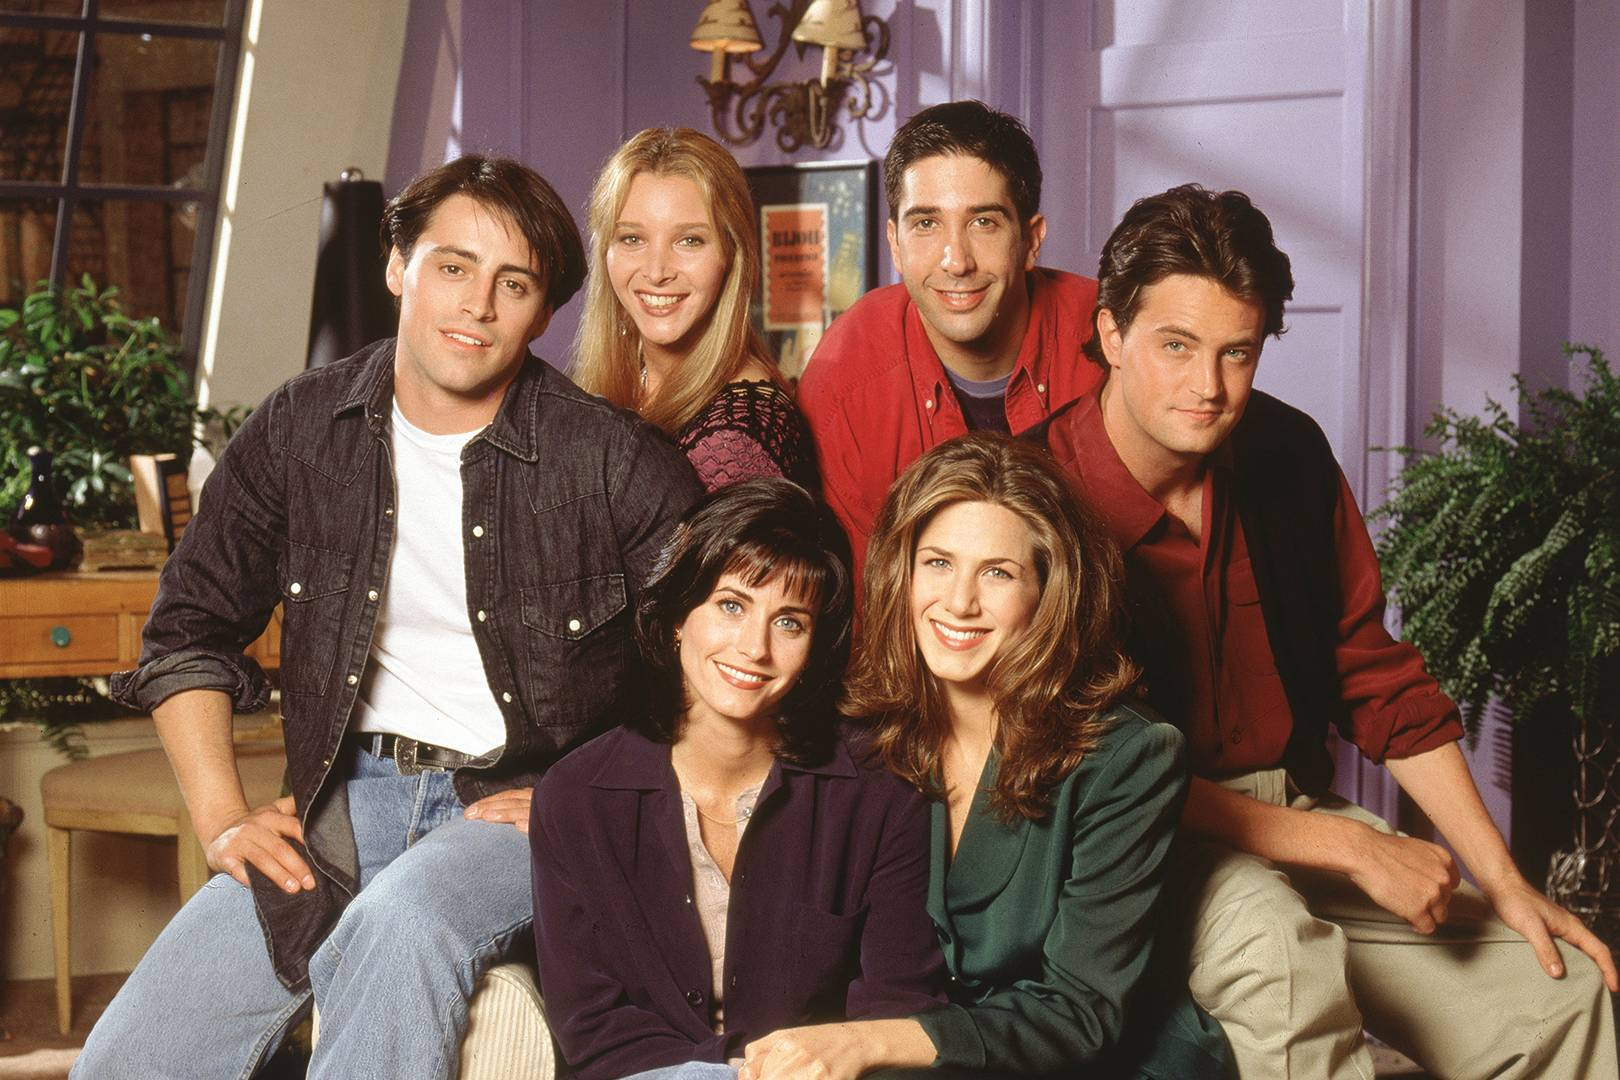 ages of friends cast members